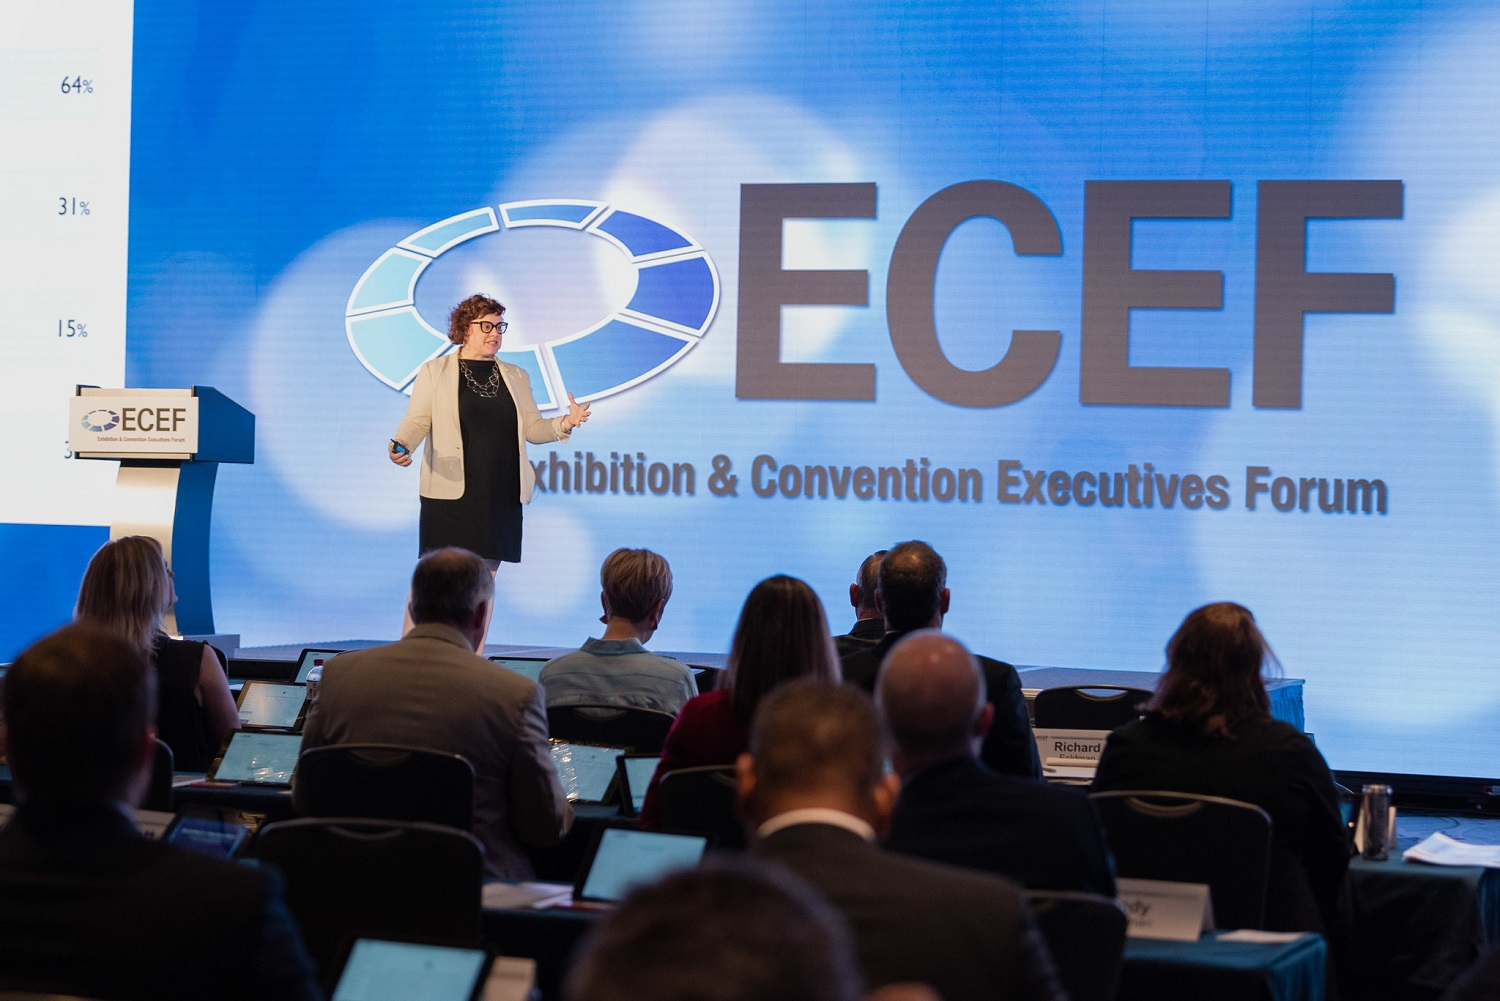 conferencii-marketing-organizatsiia-meropriiatij-exhibition-and-convention-executives-forum-ecef-2020